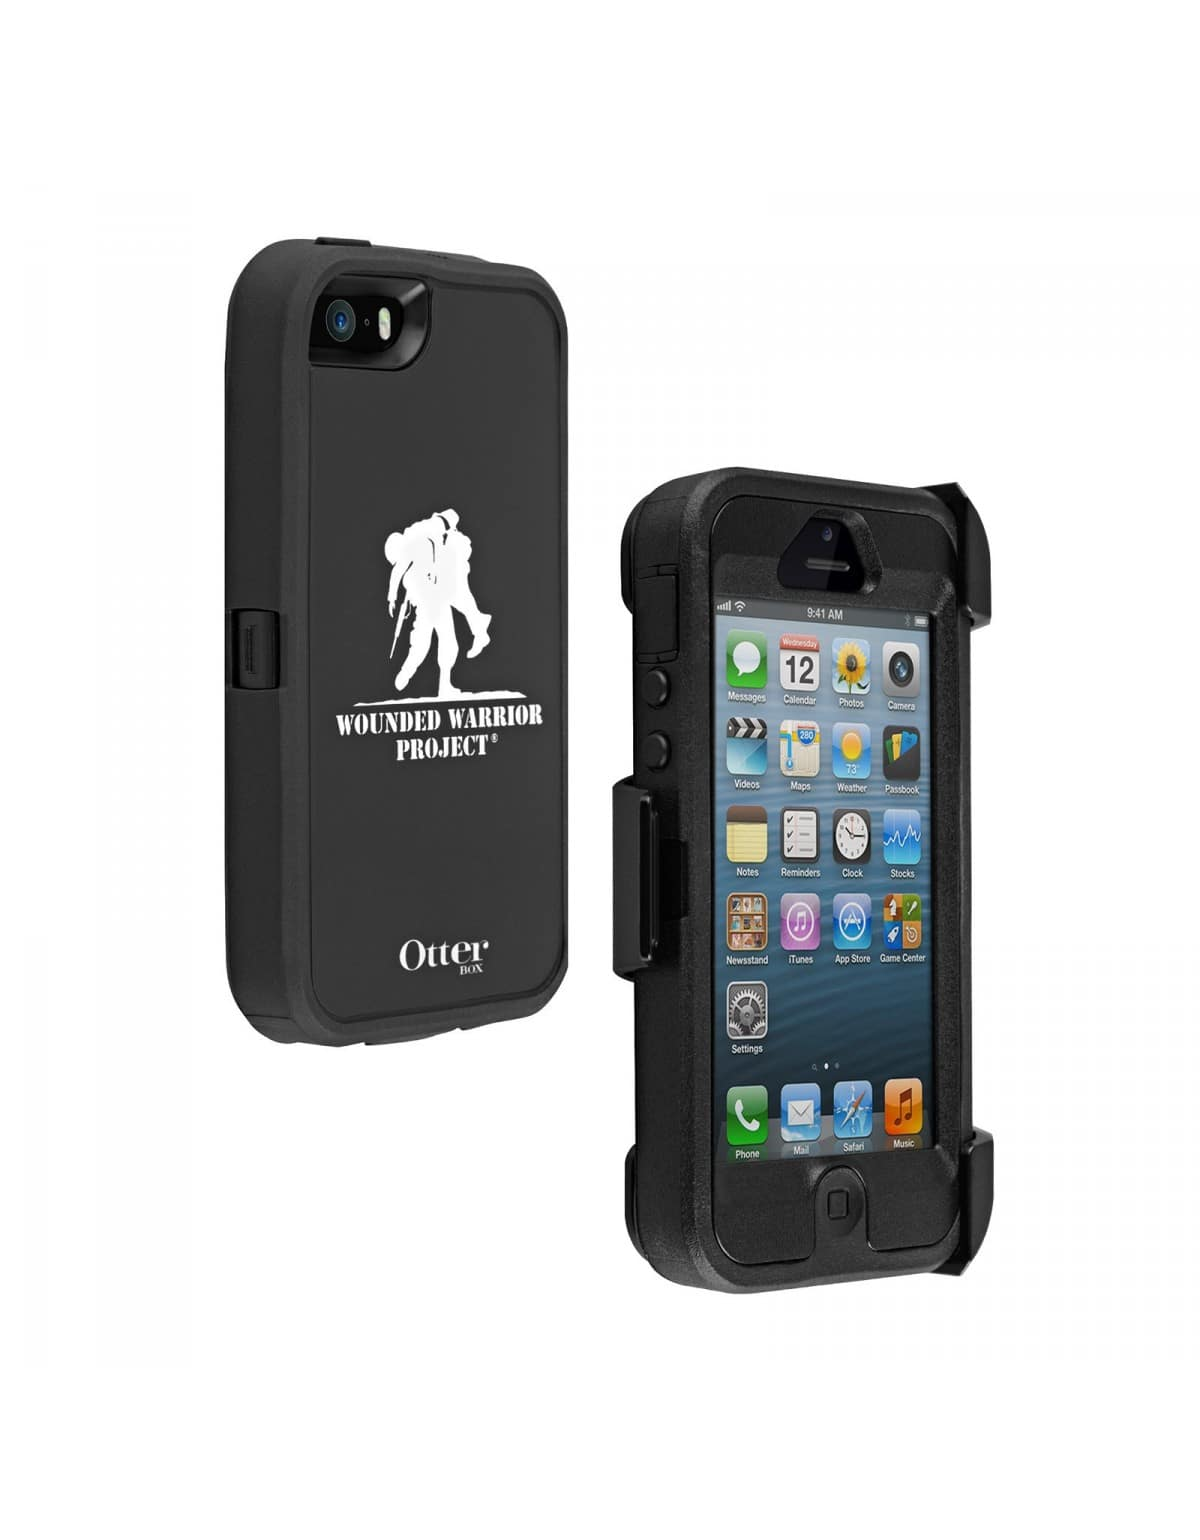 OtterBox Defender Series Case for iPhone 5/5S/SE Wounded Warrior Edition (retail) $5 + free shipping